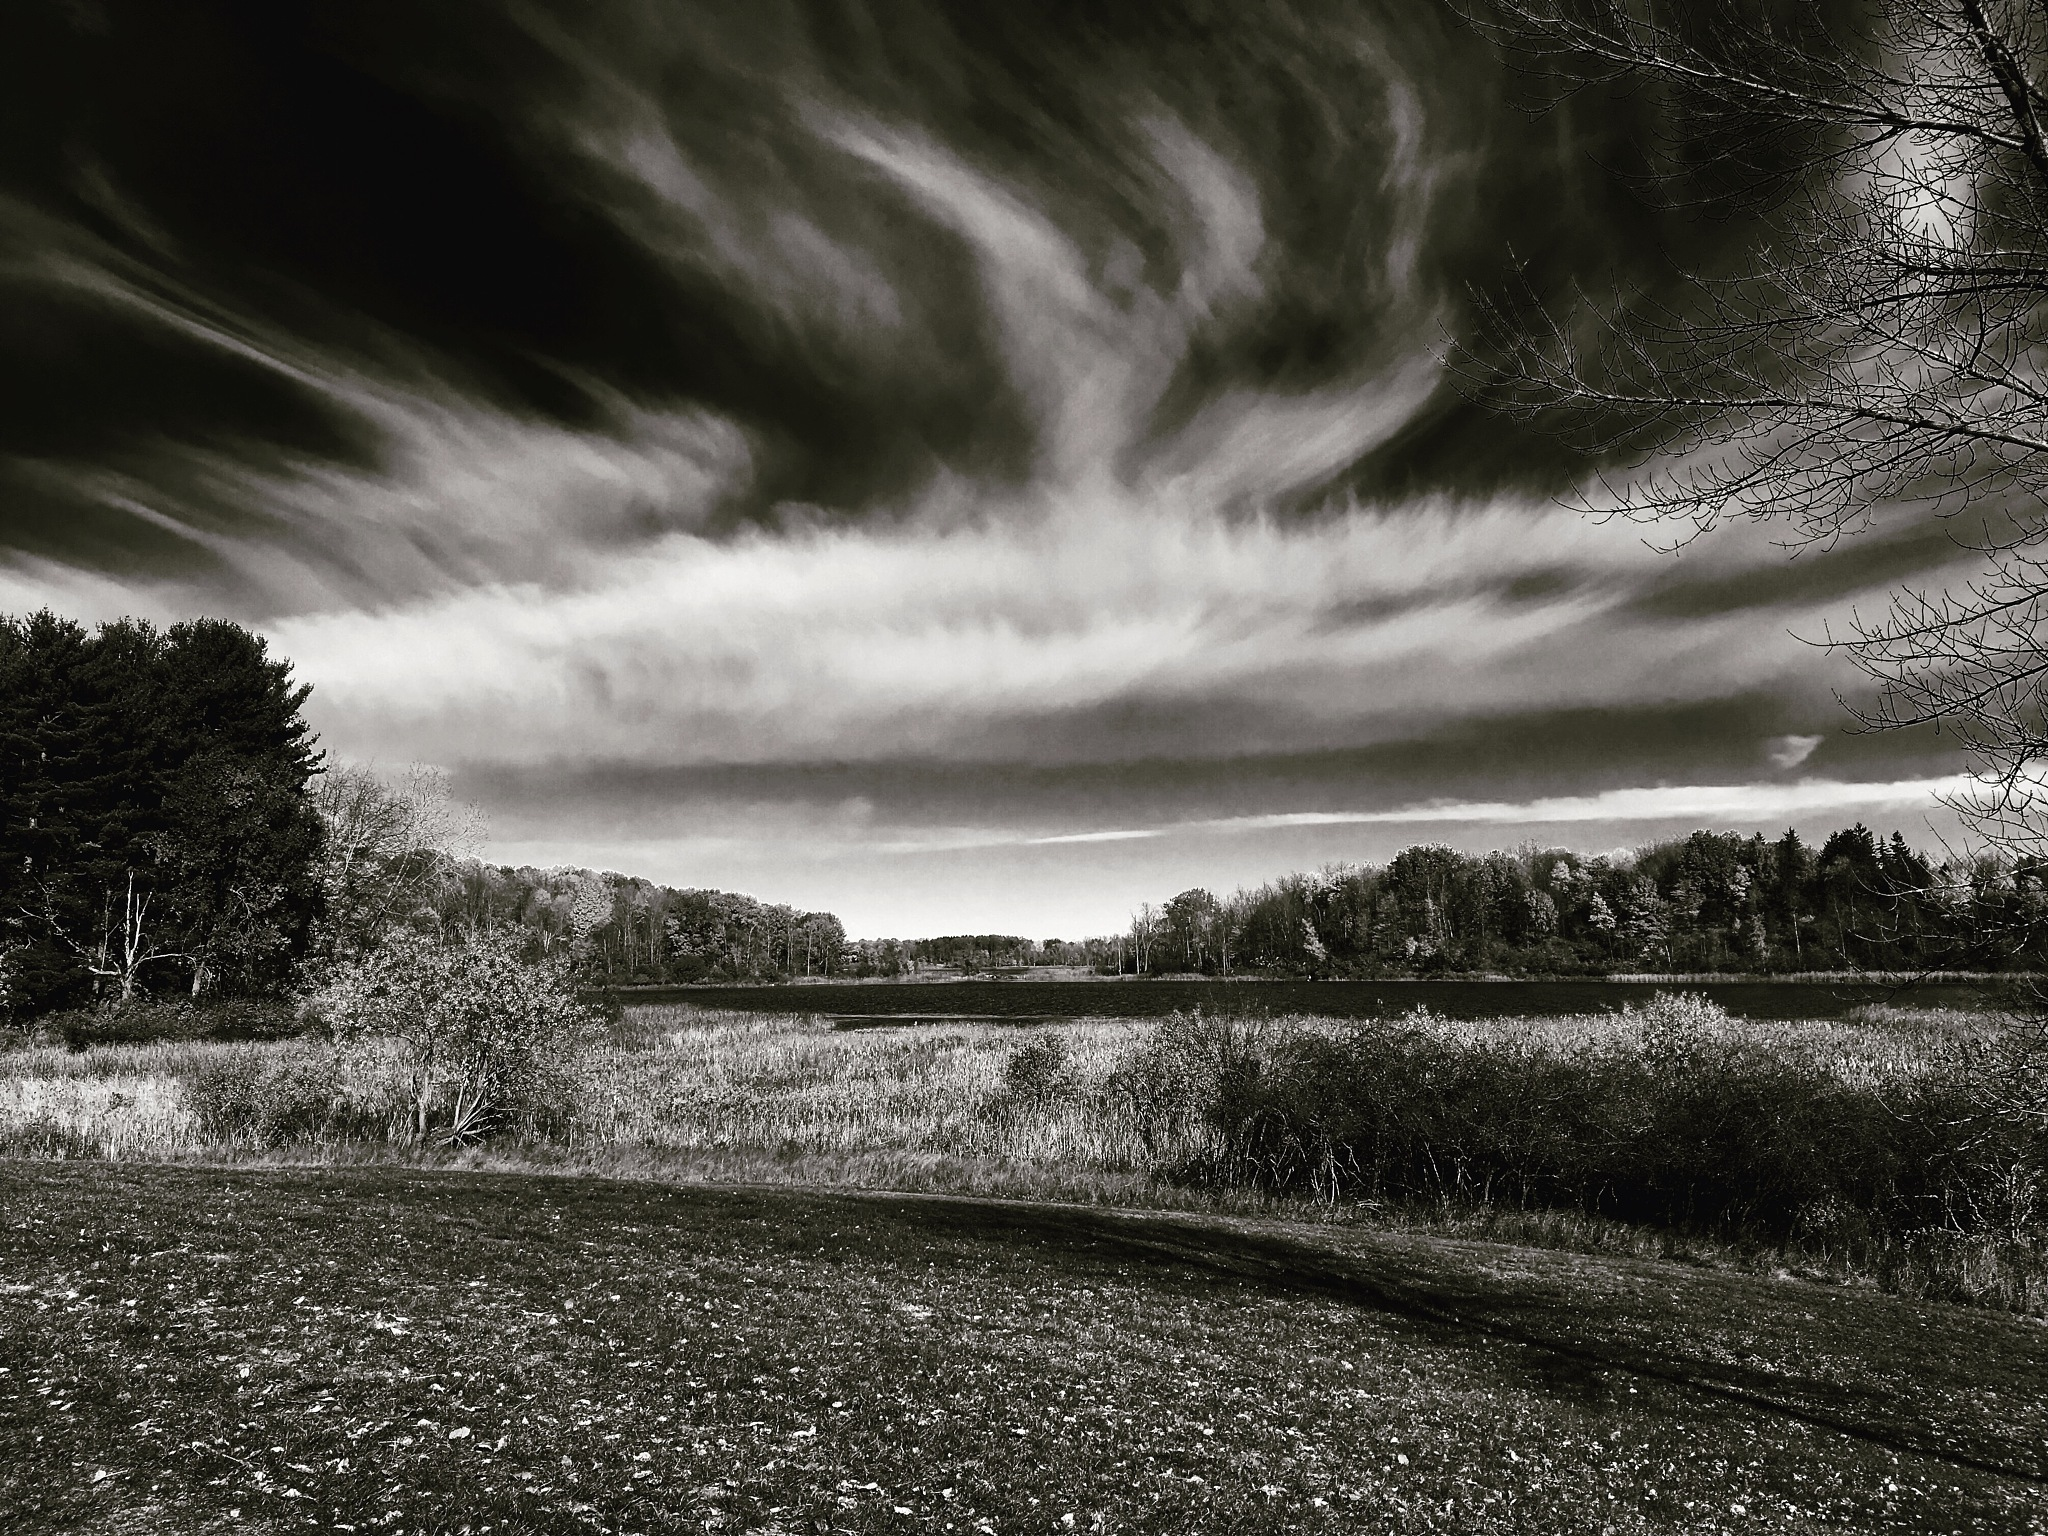 Sky Over Mendon Ponds by Thomas Merring